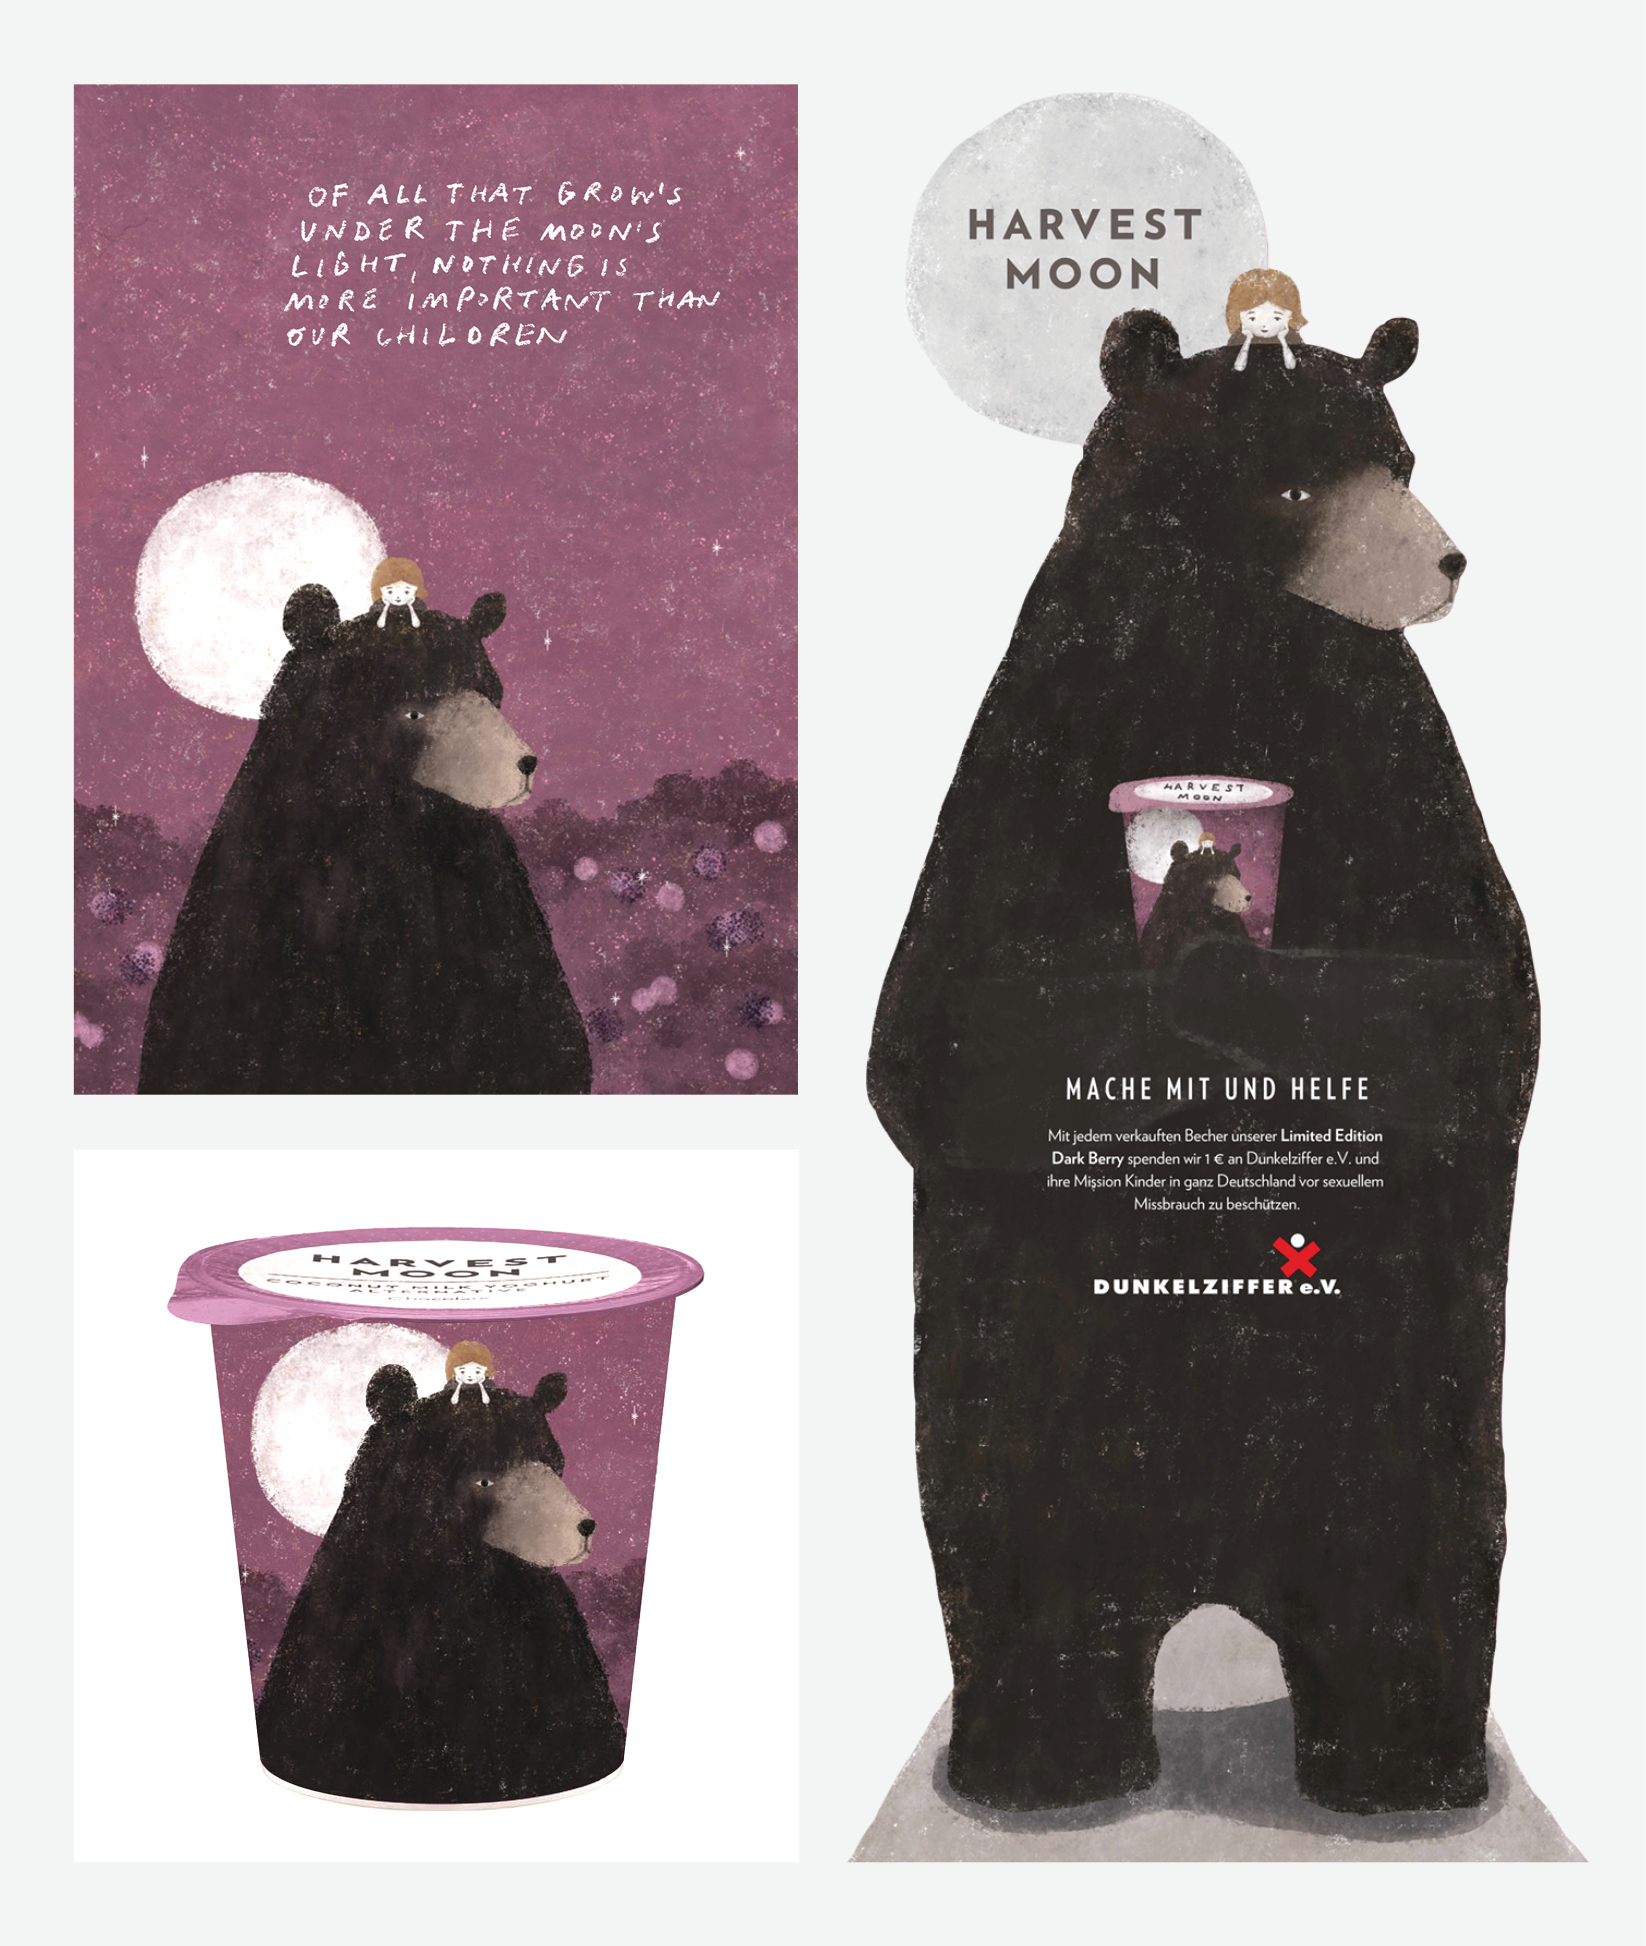 Concept packaging and support materials for special edition Dark Berry, designed to raise money for Dunkelziffer, a German organization that fights sexual abuse against children. In collaboration with Irving and Co. and illustrator, Akira Kusaka.